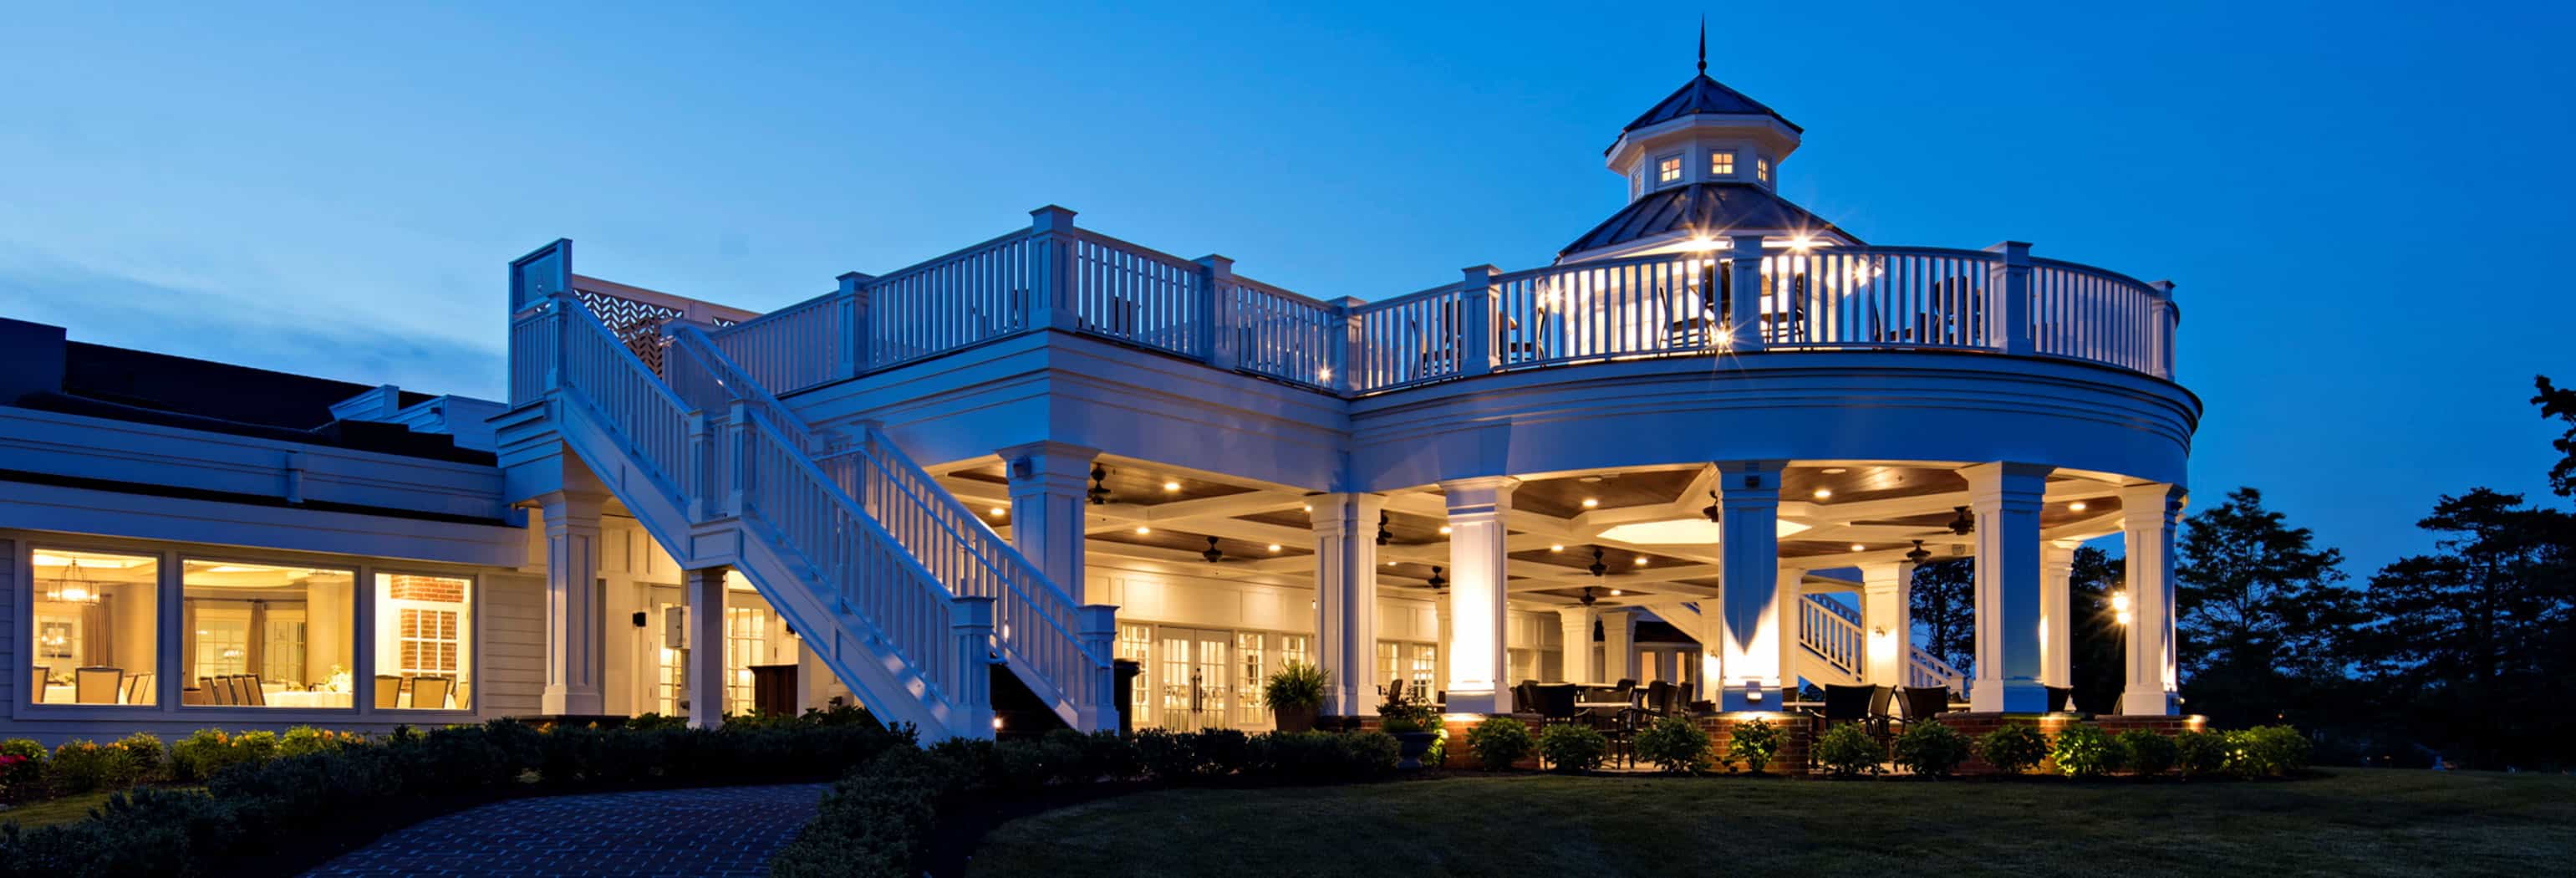 Atlantic City Country Club S Team Of Wedding Professionals Are Here To Ist You In Making Your Event A Dream Come True